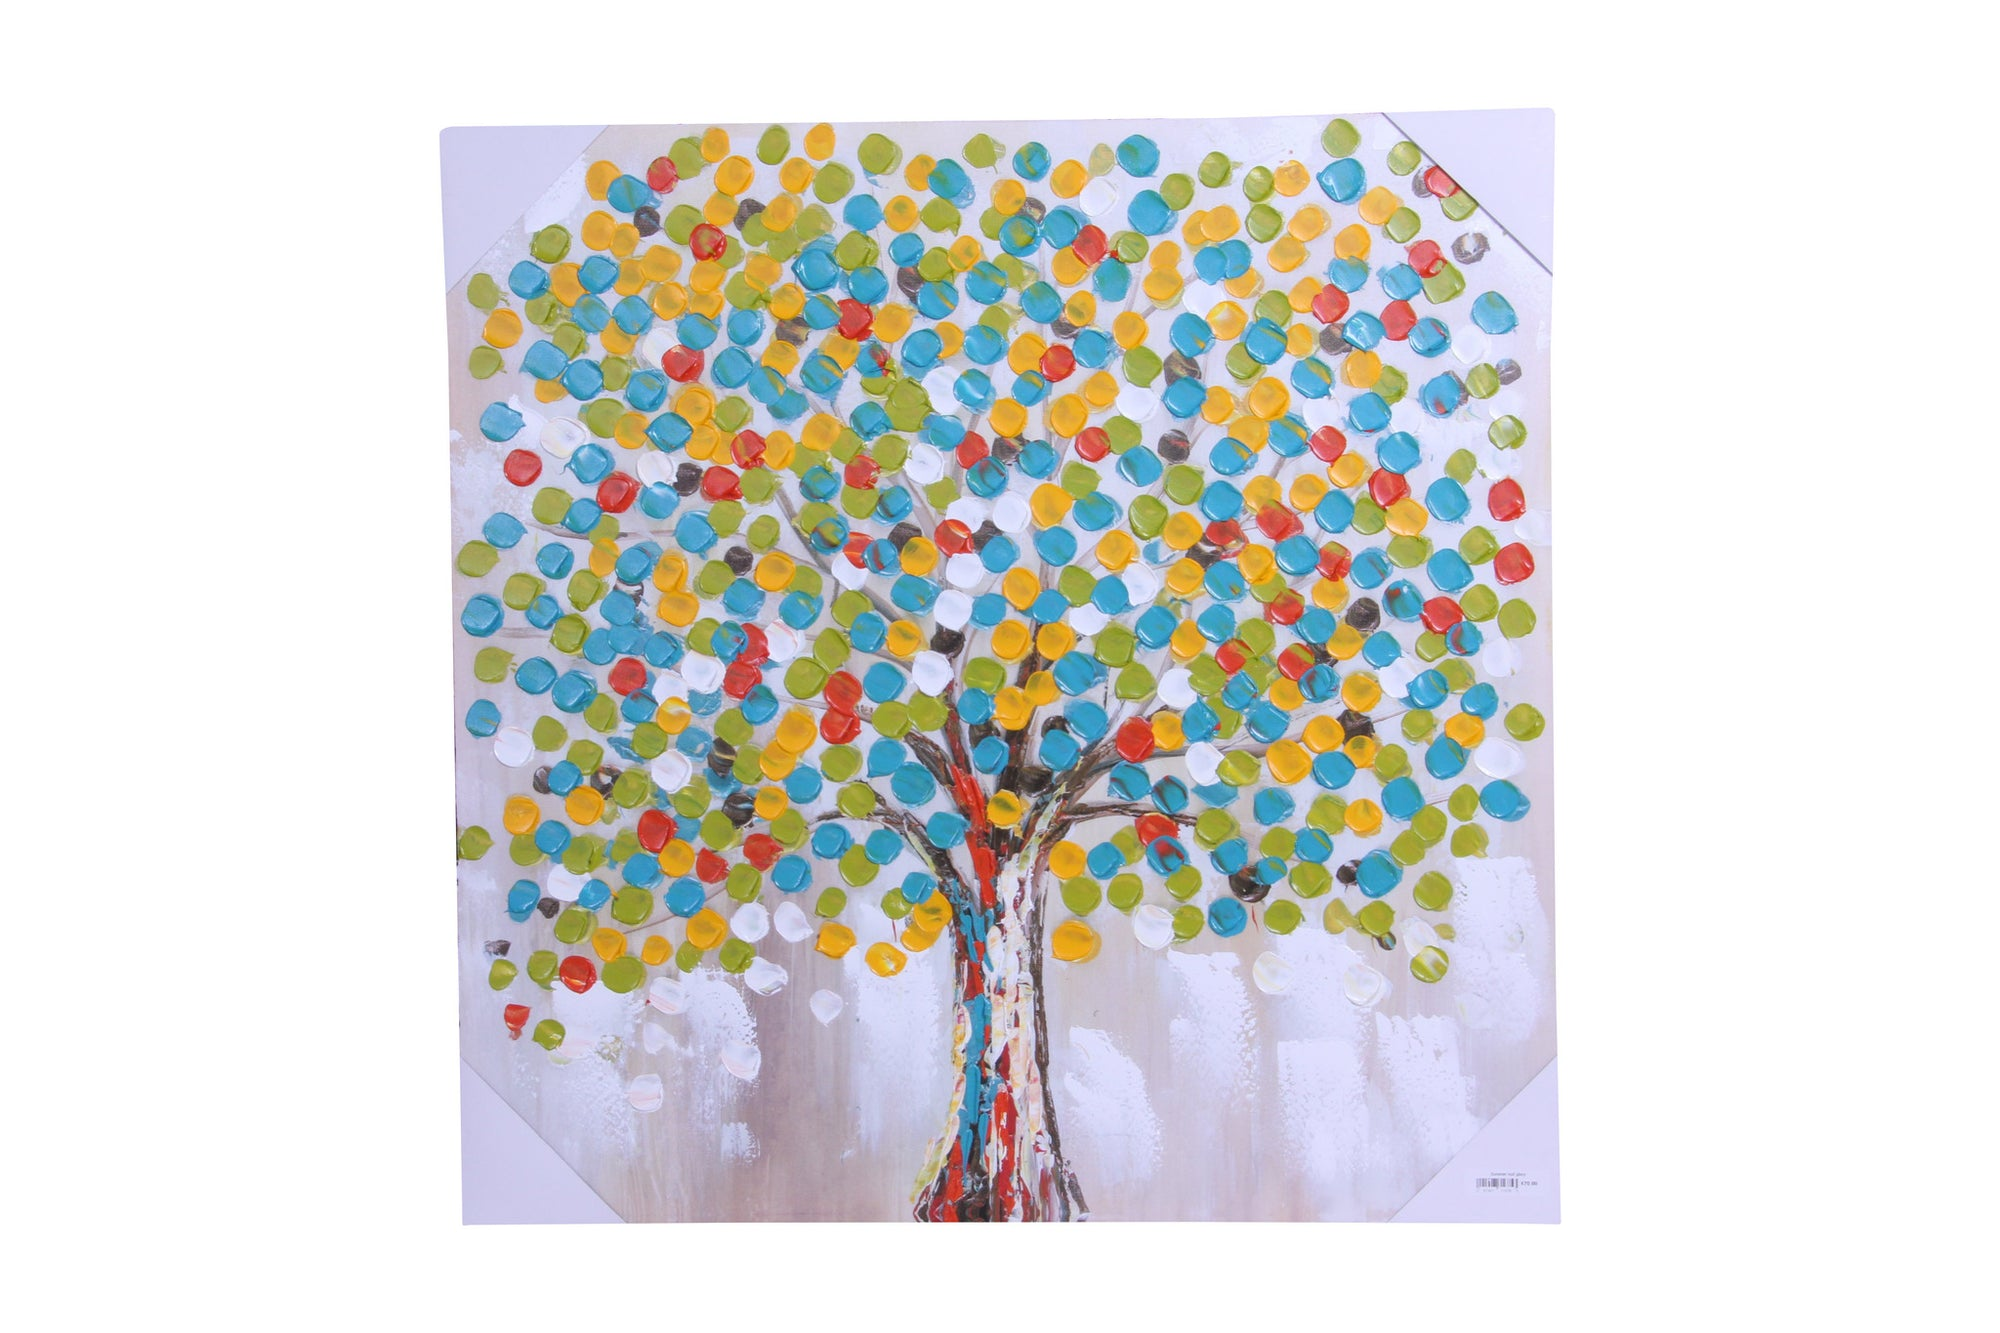 summer leaf glory hand painted wall art on canvas - Fervor + Hue